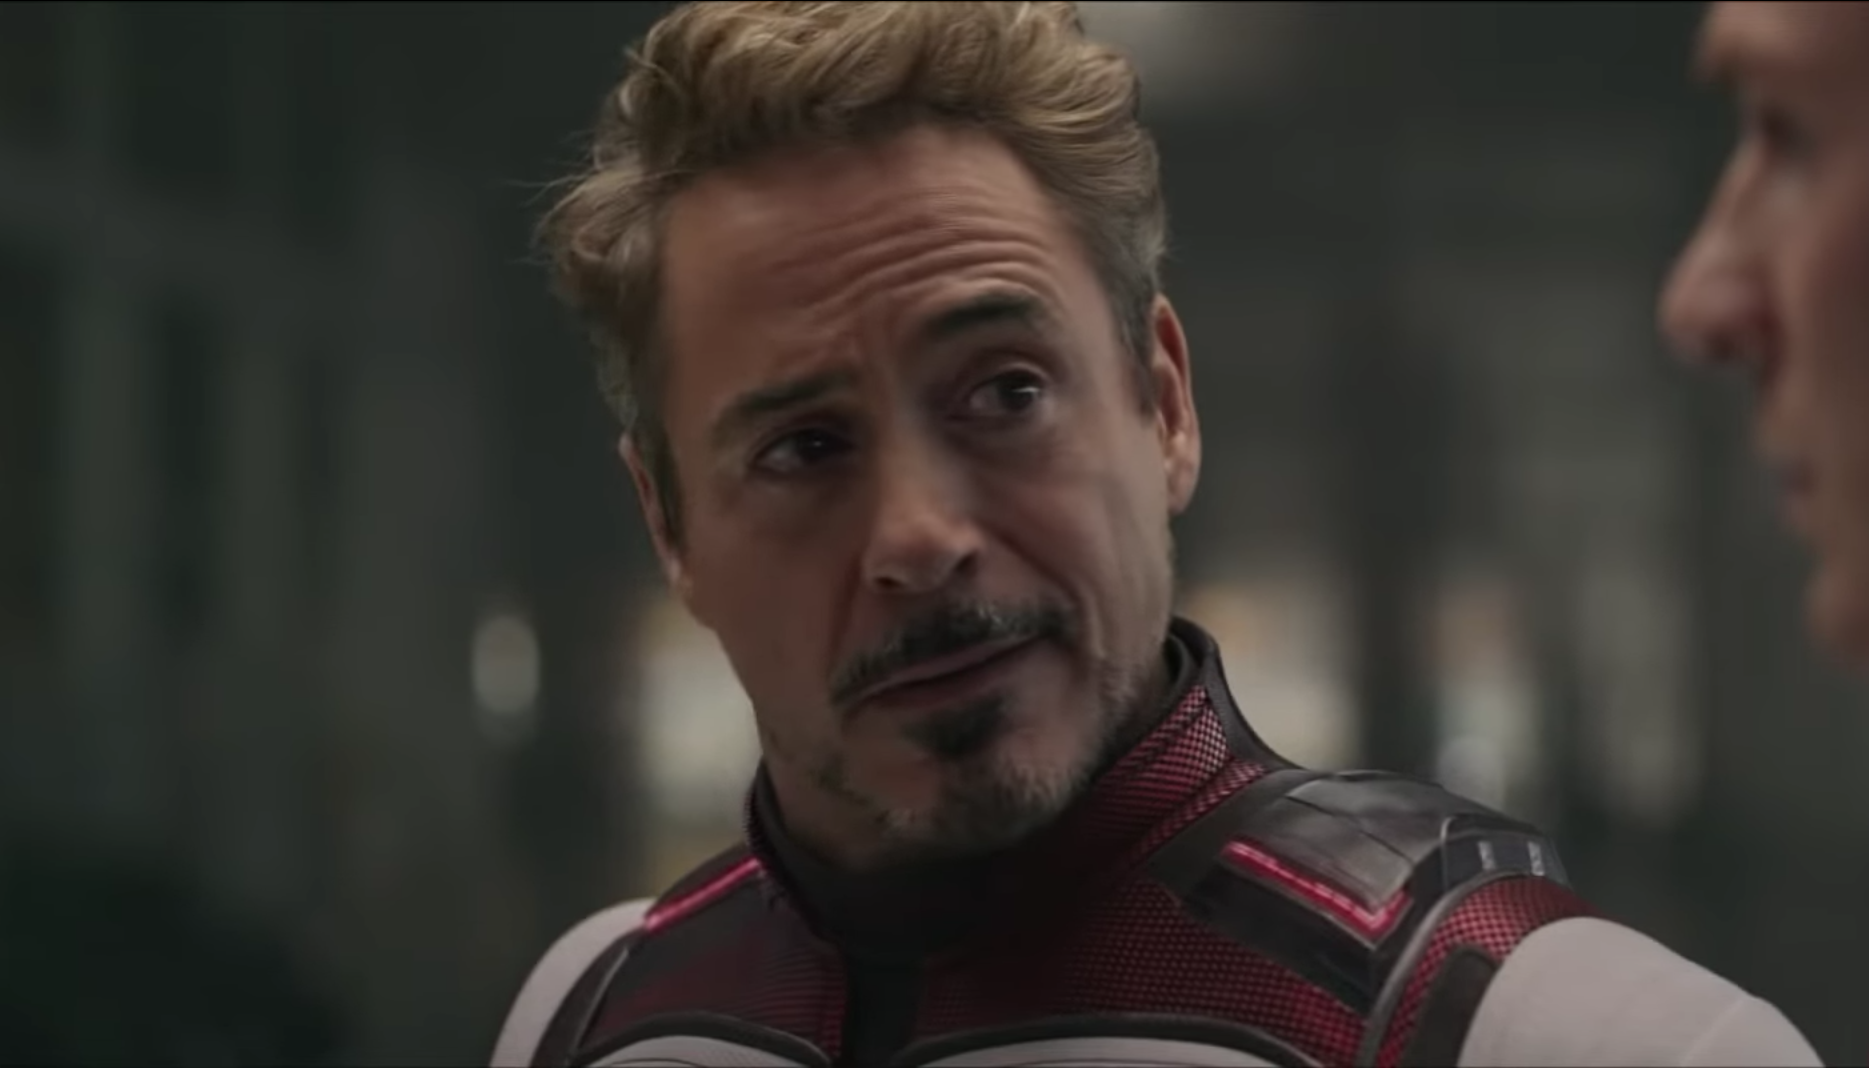 Avengers: Endgame' Fans Have Cracked What Tony Stark's